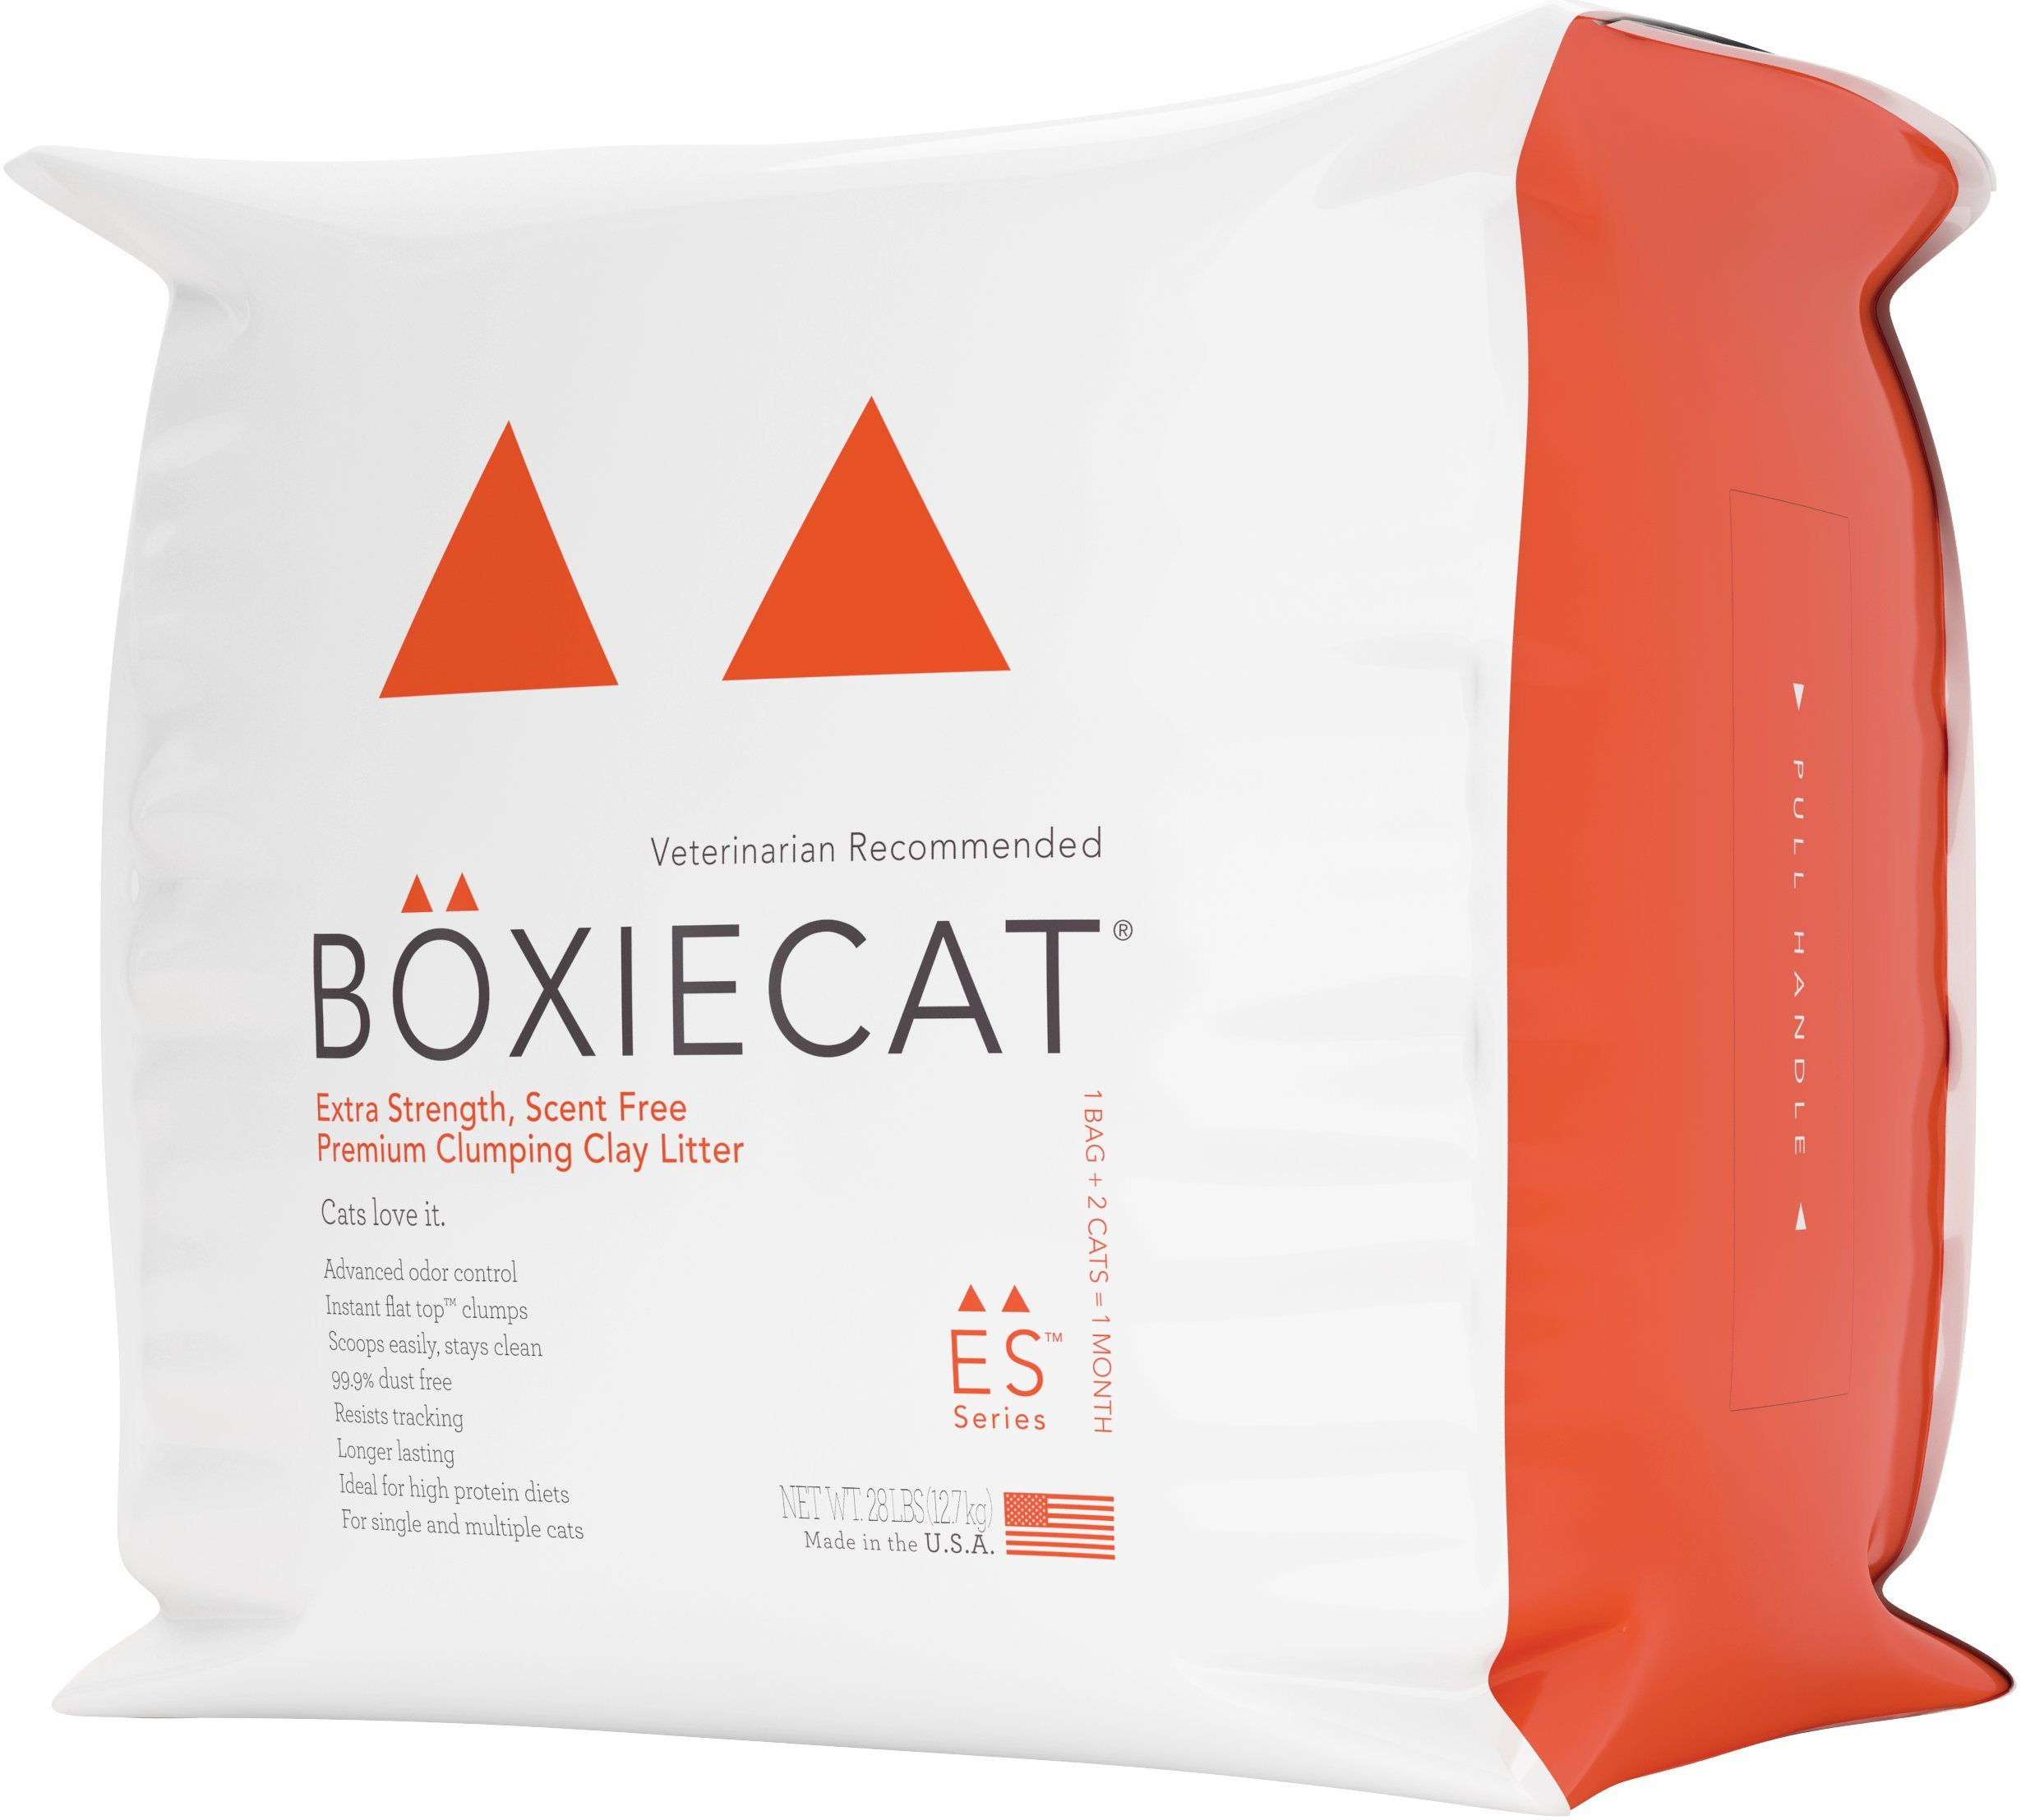 Boxiecat Extra Strength Premium Clumping Clay Cat Litter, 28 lb by Boxiecat